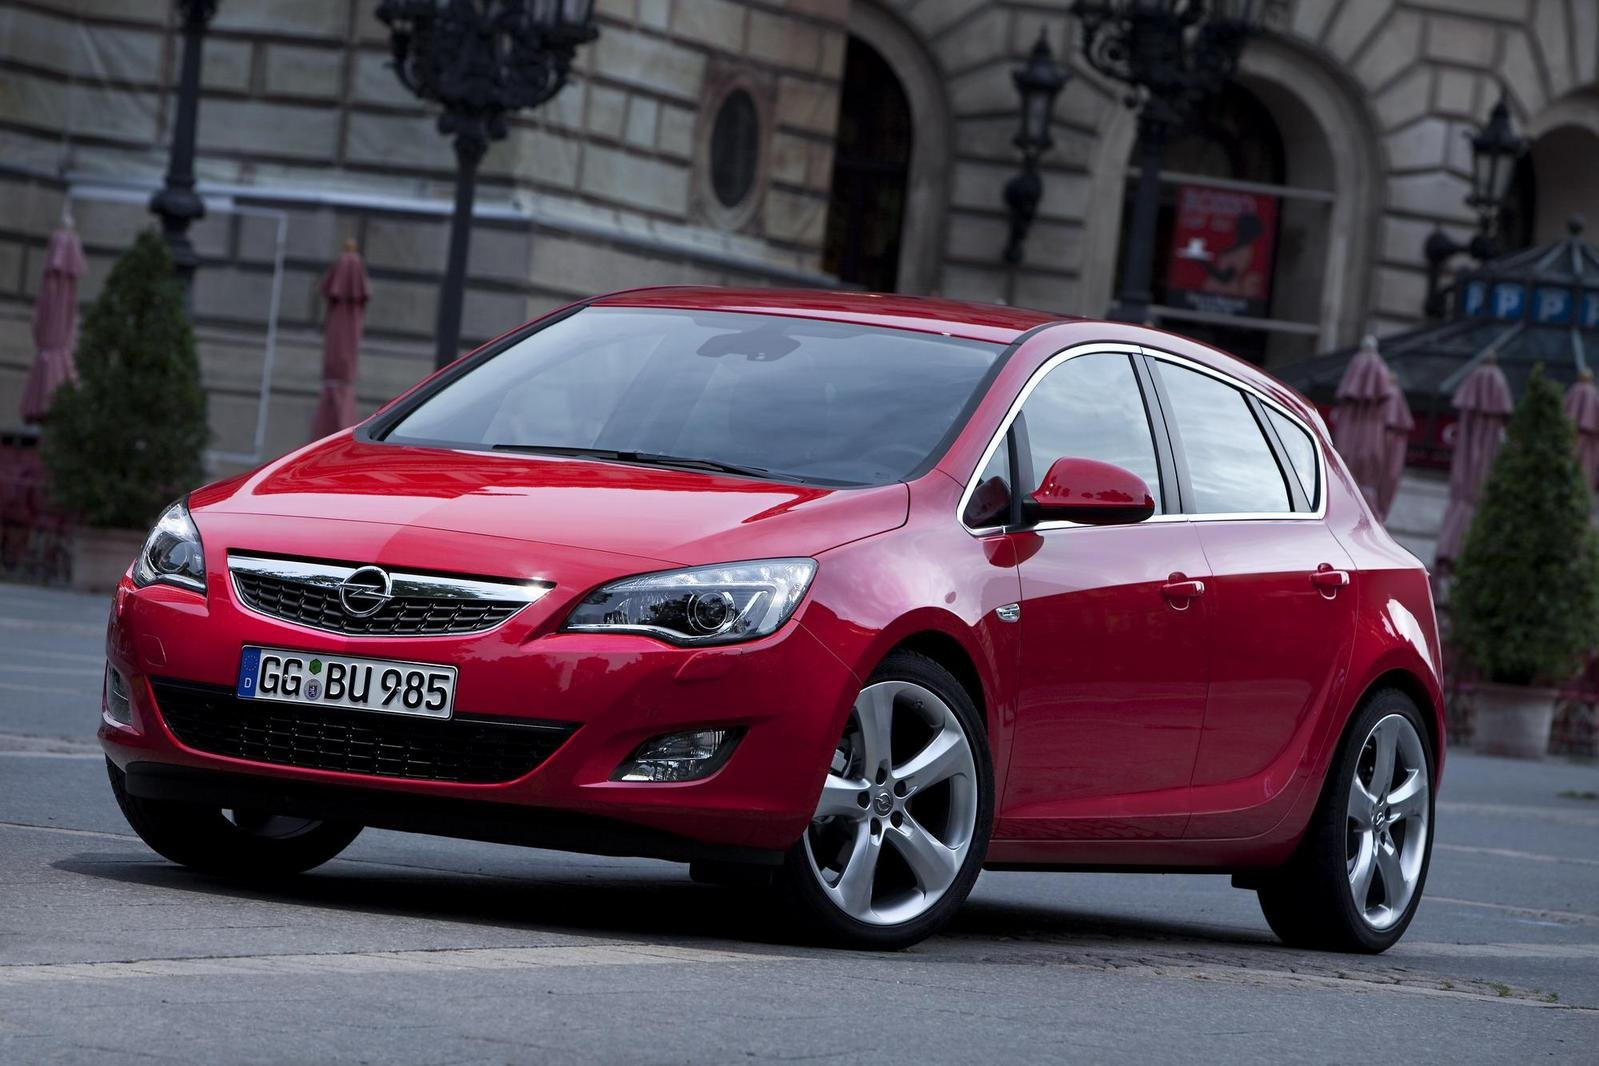 2010 opel astra picture 330492 car review top speed. Black Bedroom Furniture Sets. Home Design Ideas